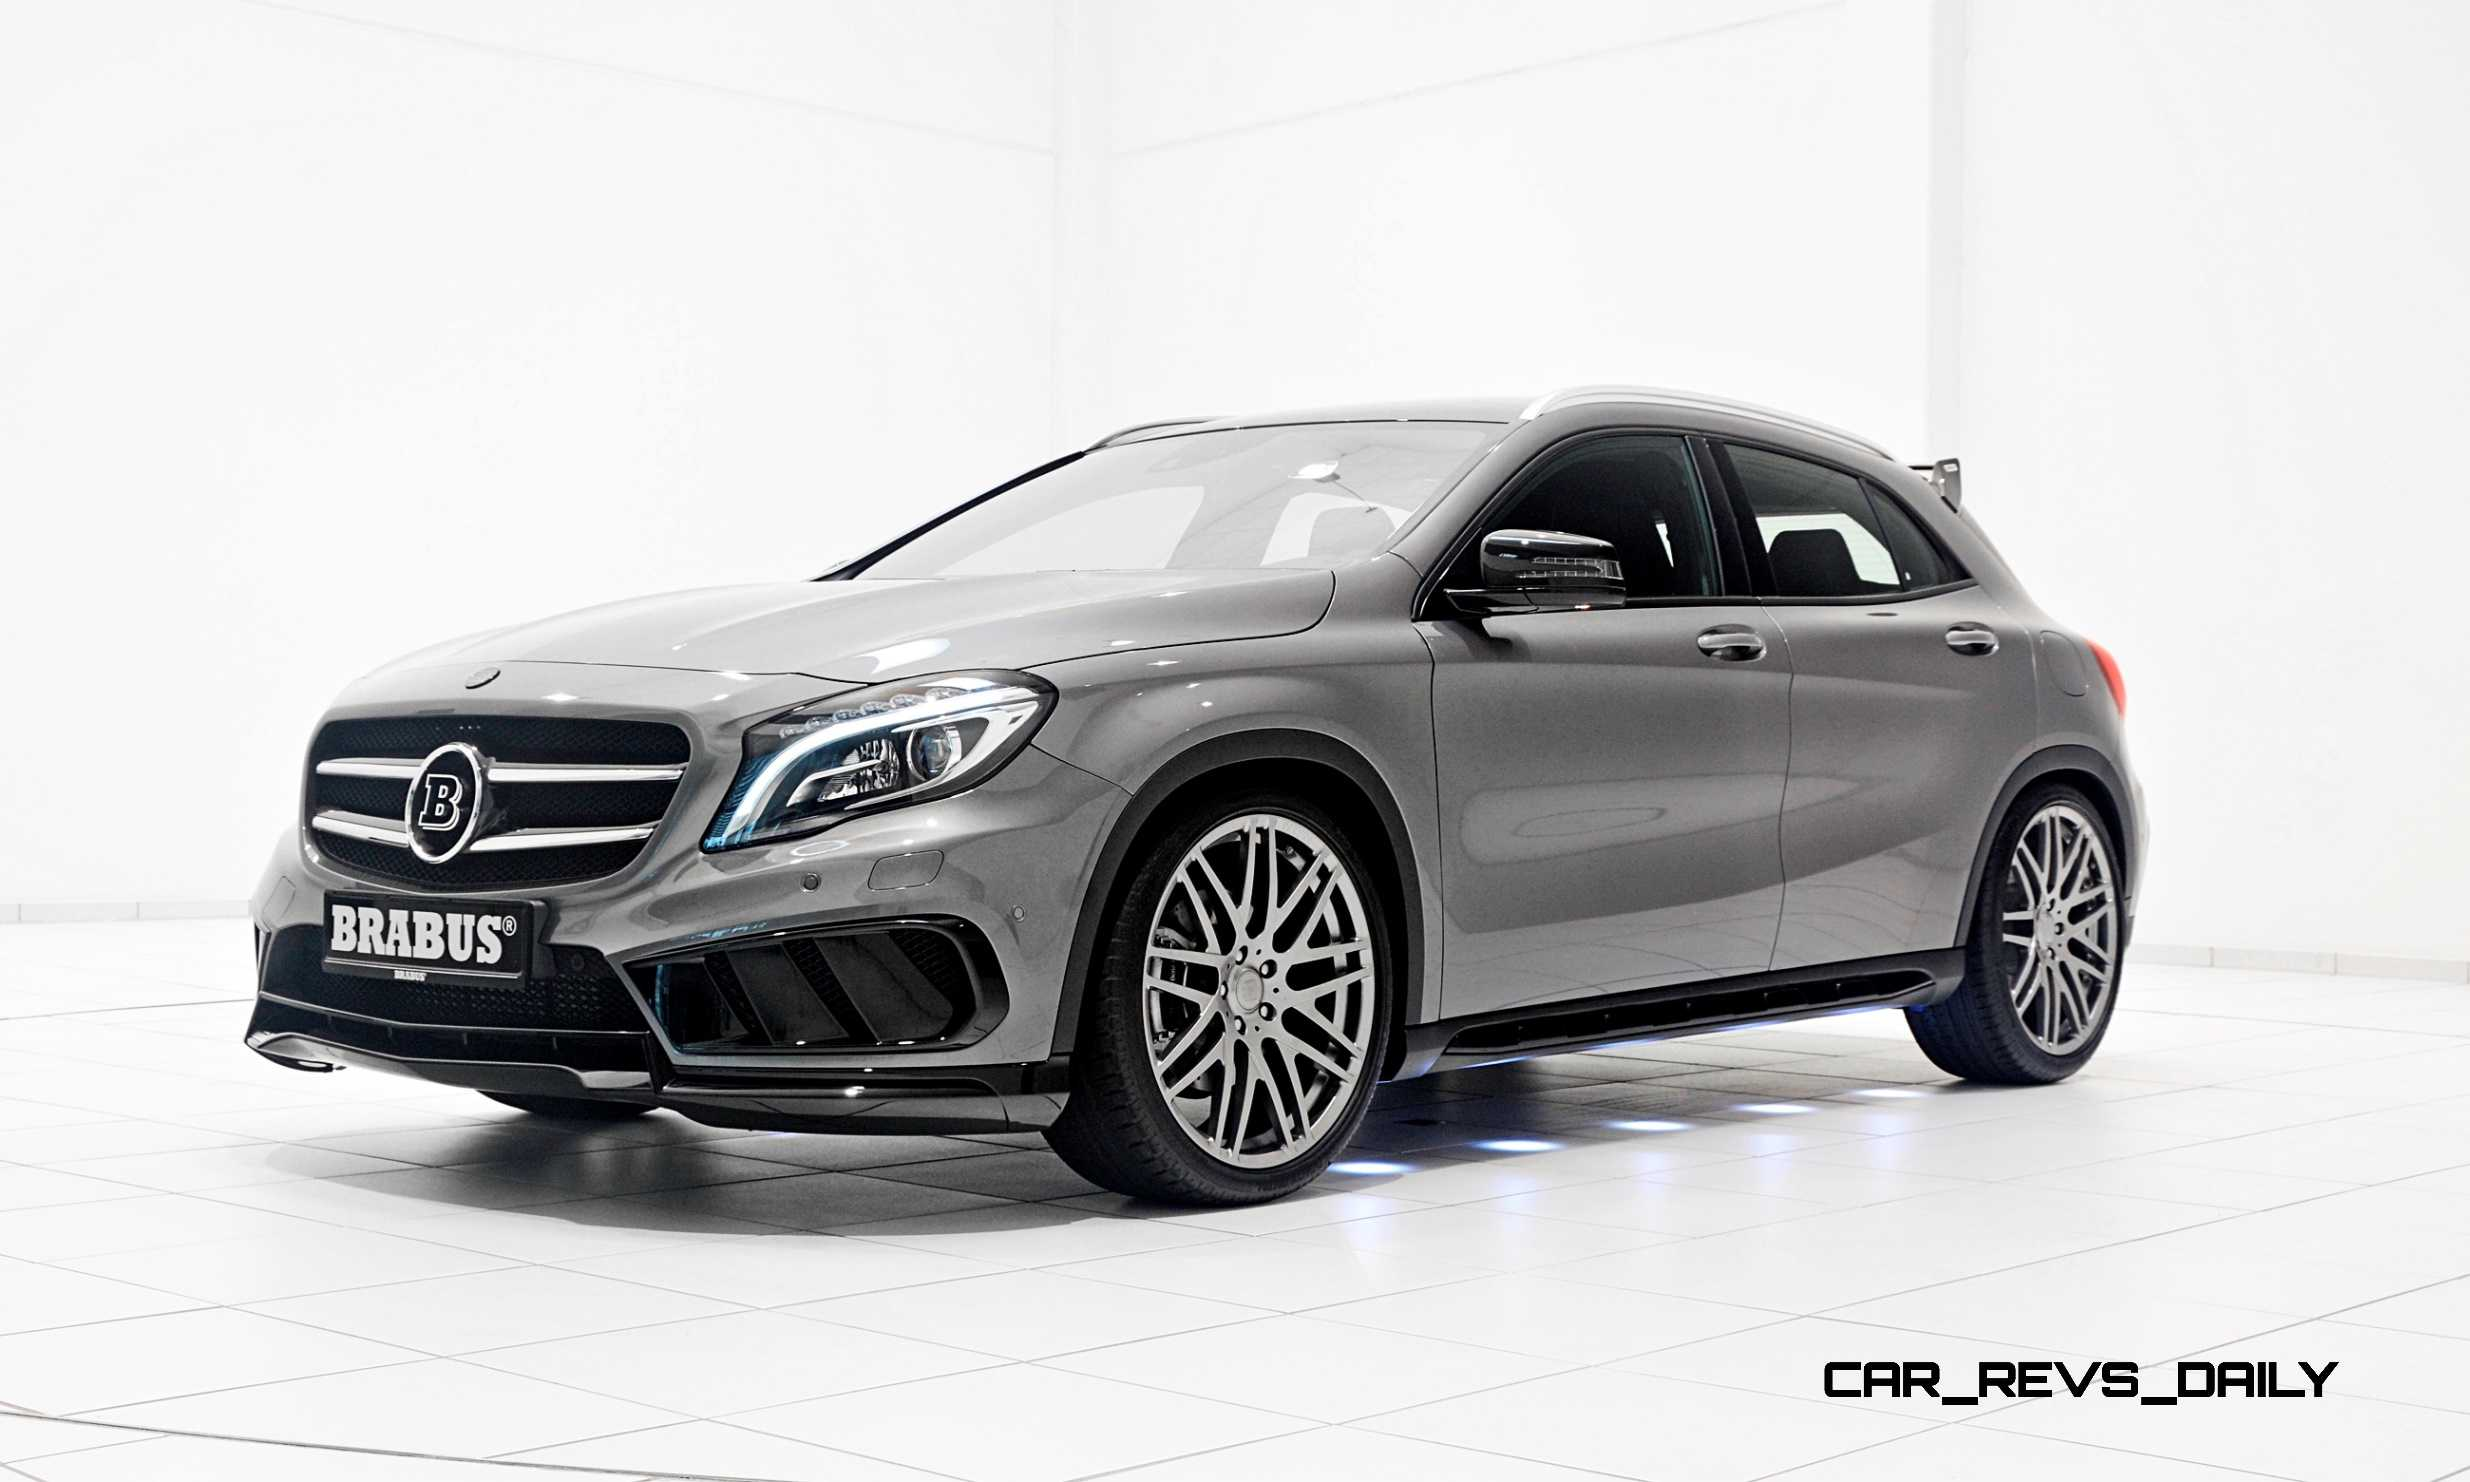 400hp 2015 brabus mercedes benz gla hunkers low on for Mercedes benz gla 2015 price